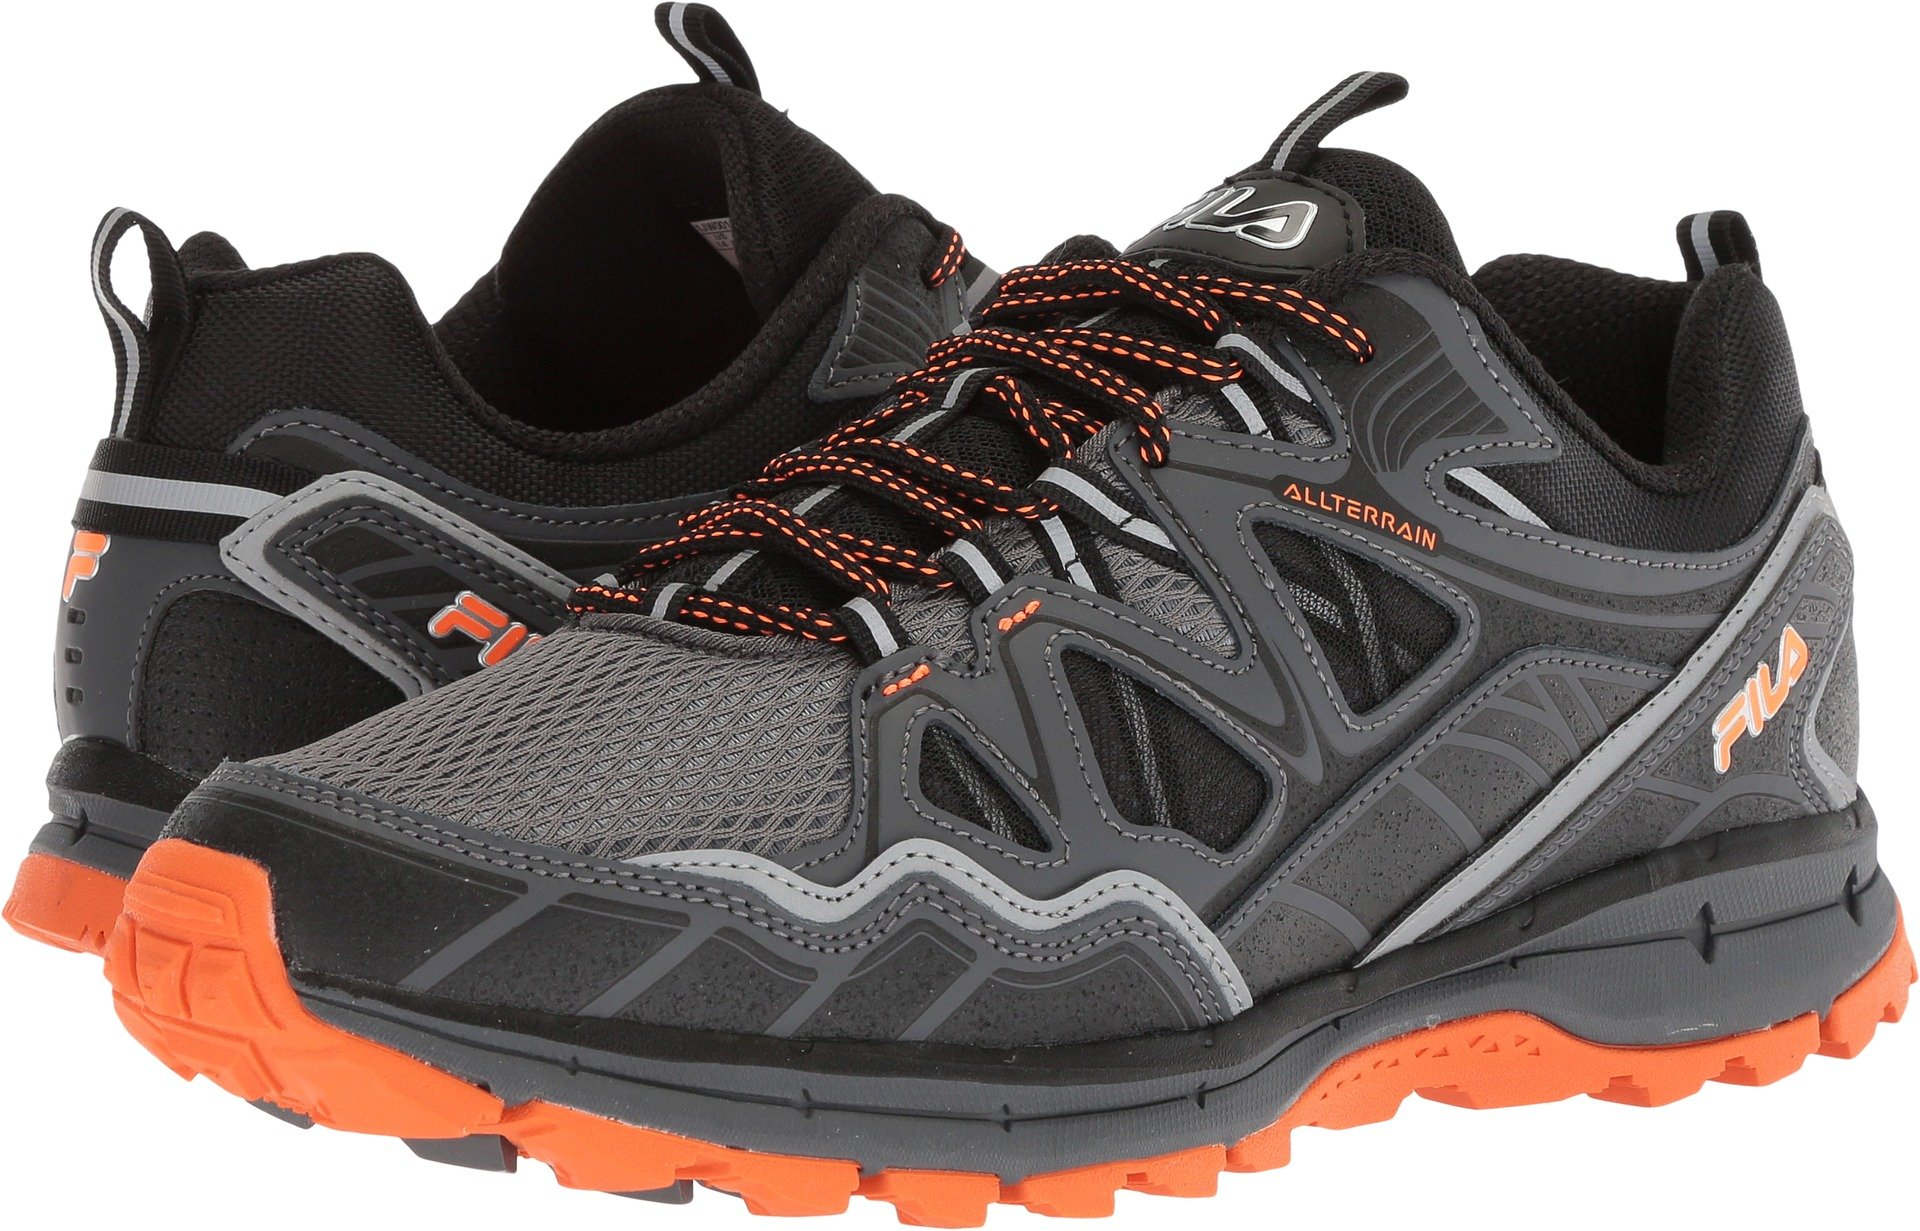 Fila Men's Memory TKO TR 5.0 Trail Running Shoe, Castlerock/Dark Shadow/Vibrant Orange, 9.5 Wide US